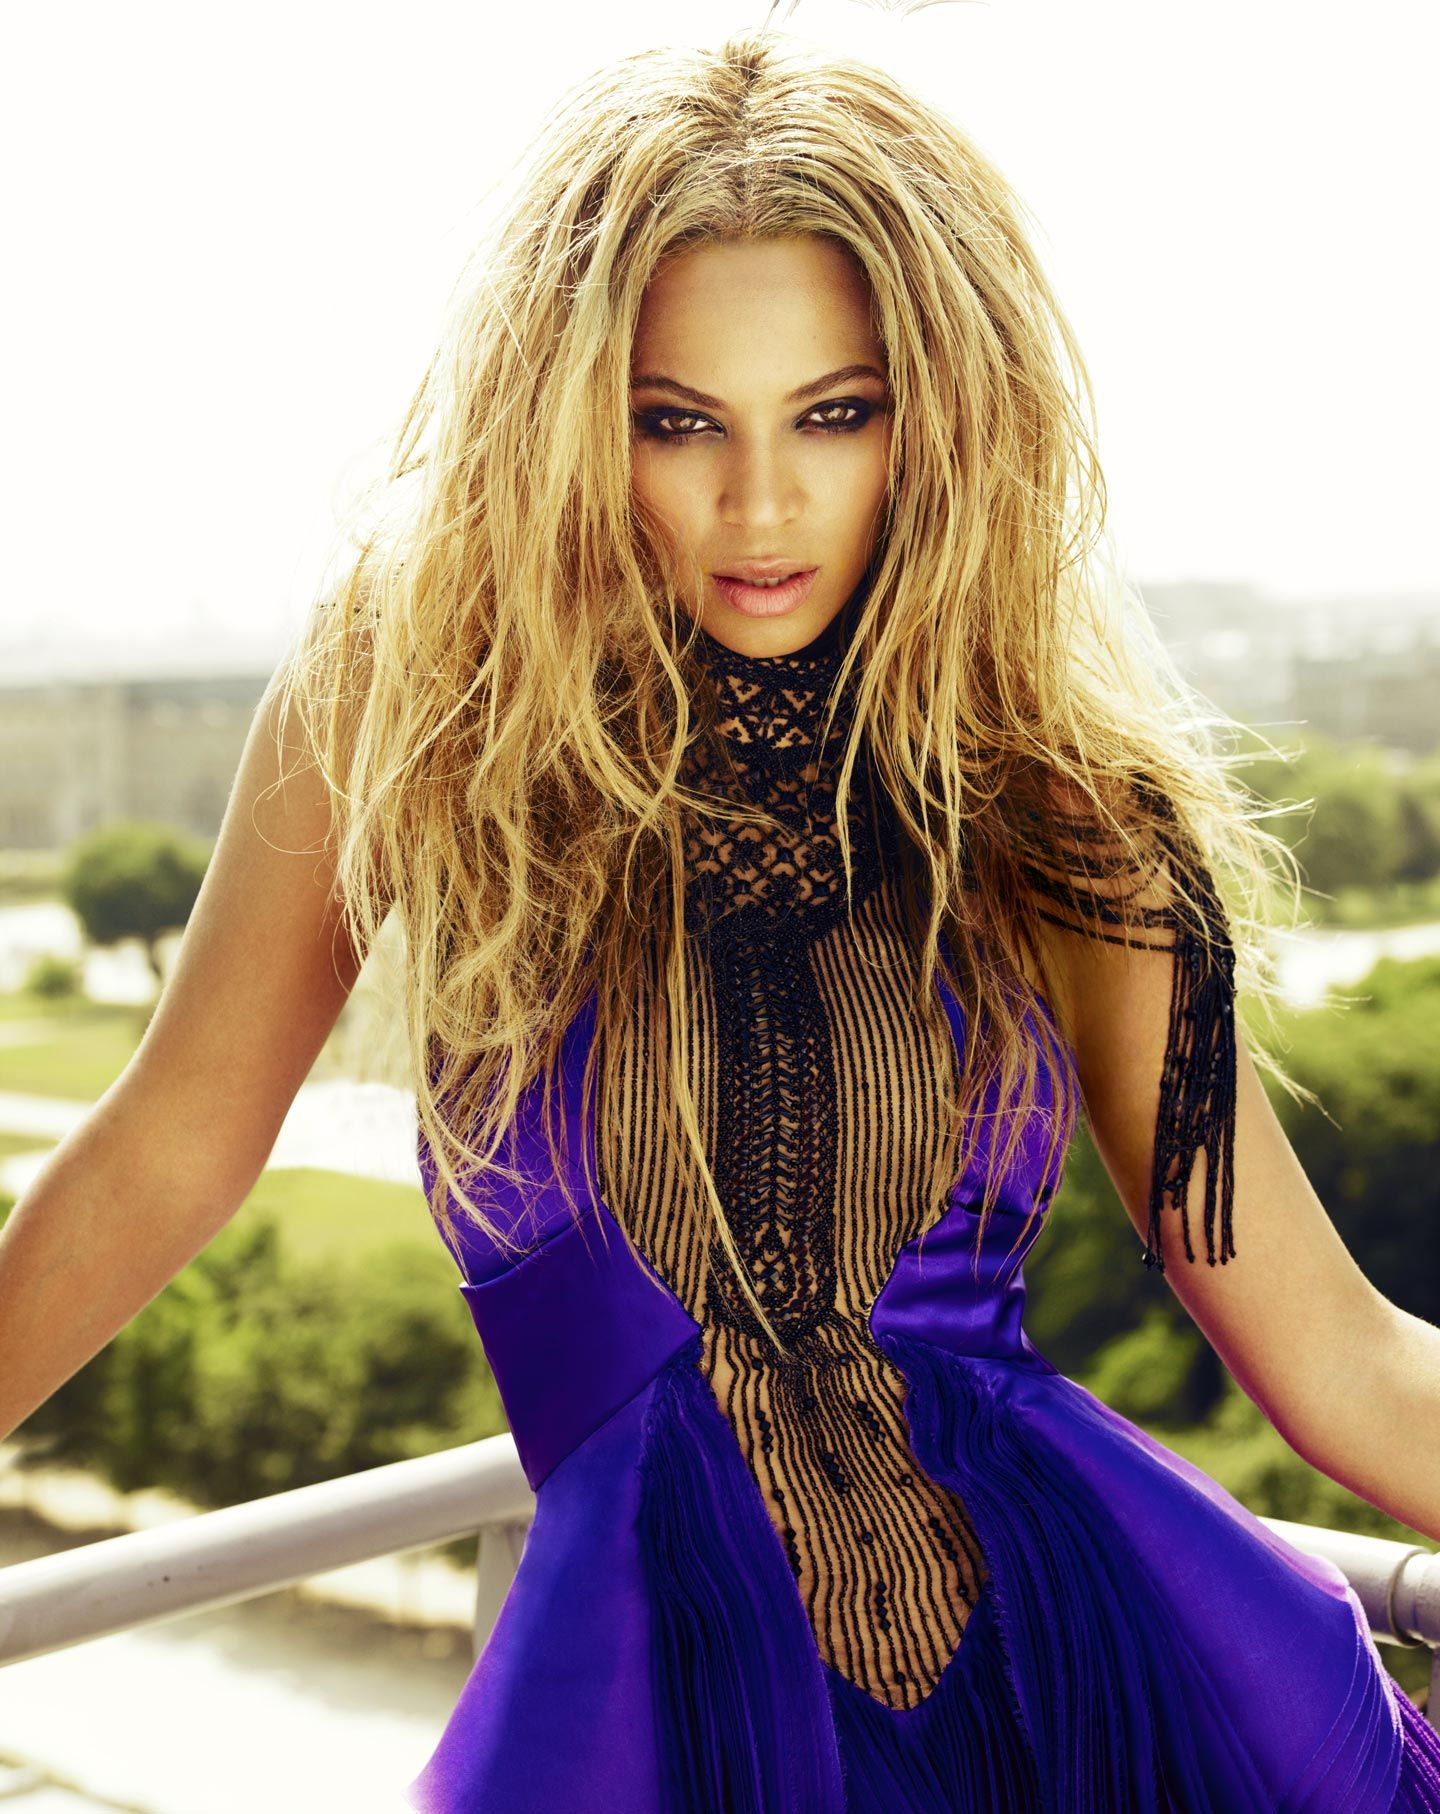 Beyoncé Giselle Knowles is an American singer songwriter record